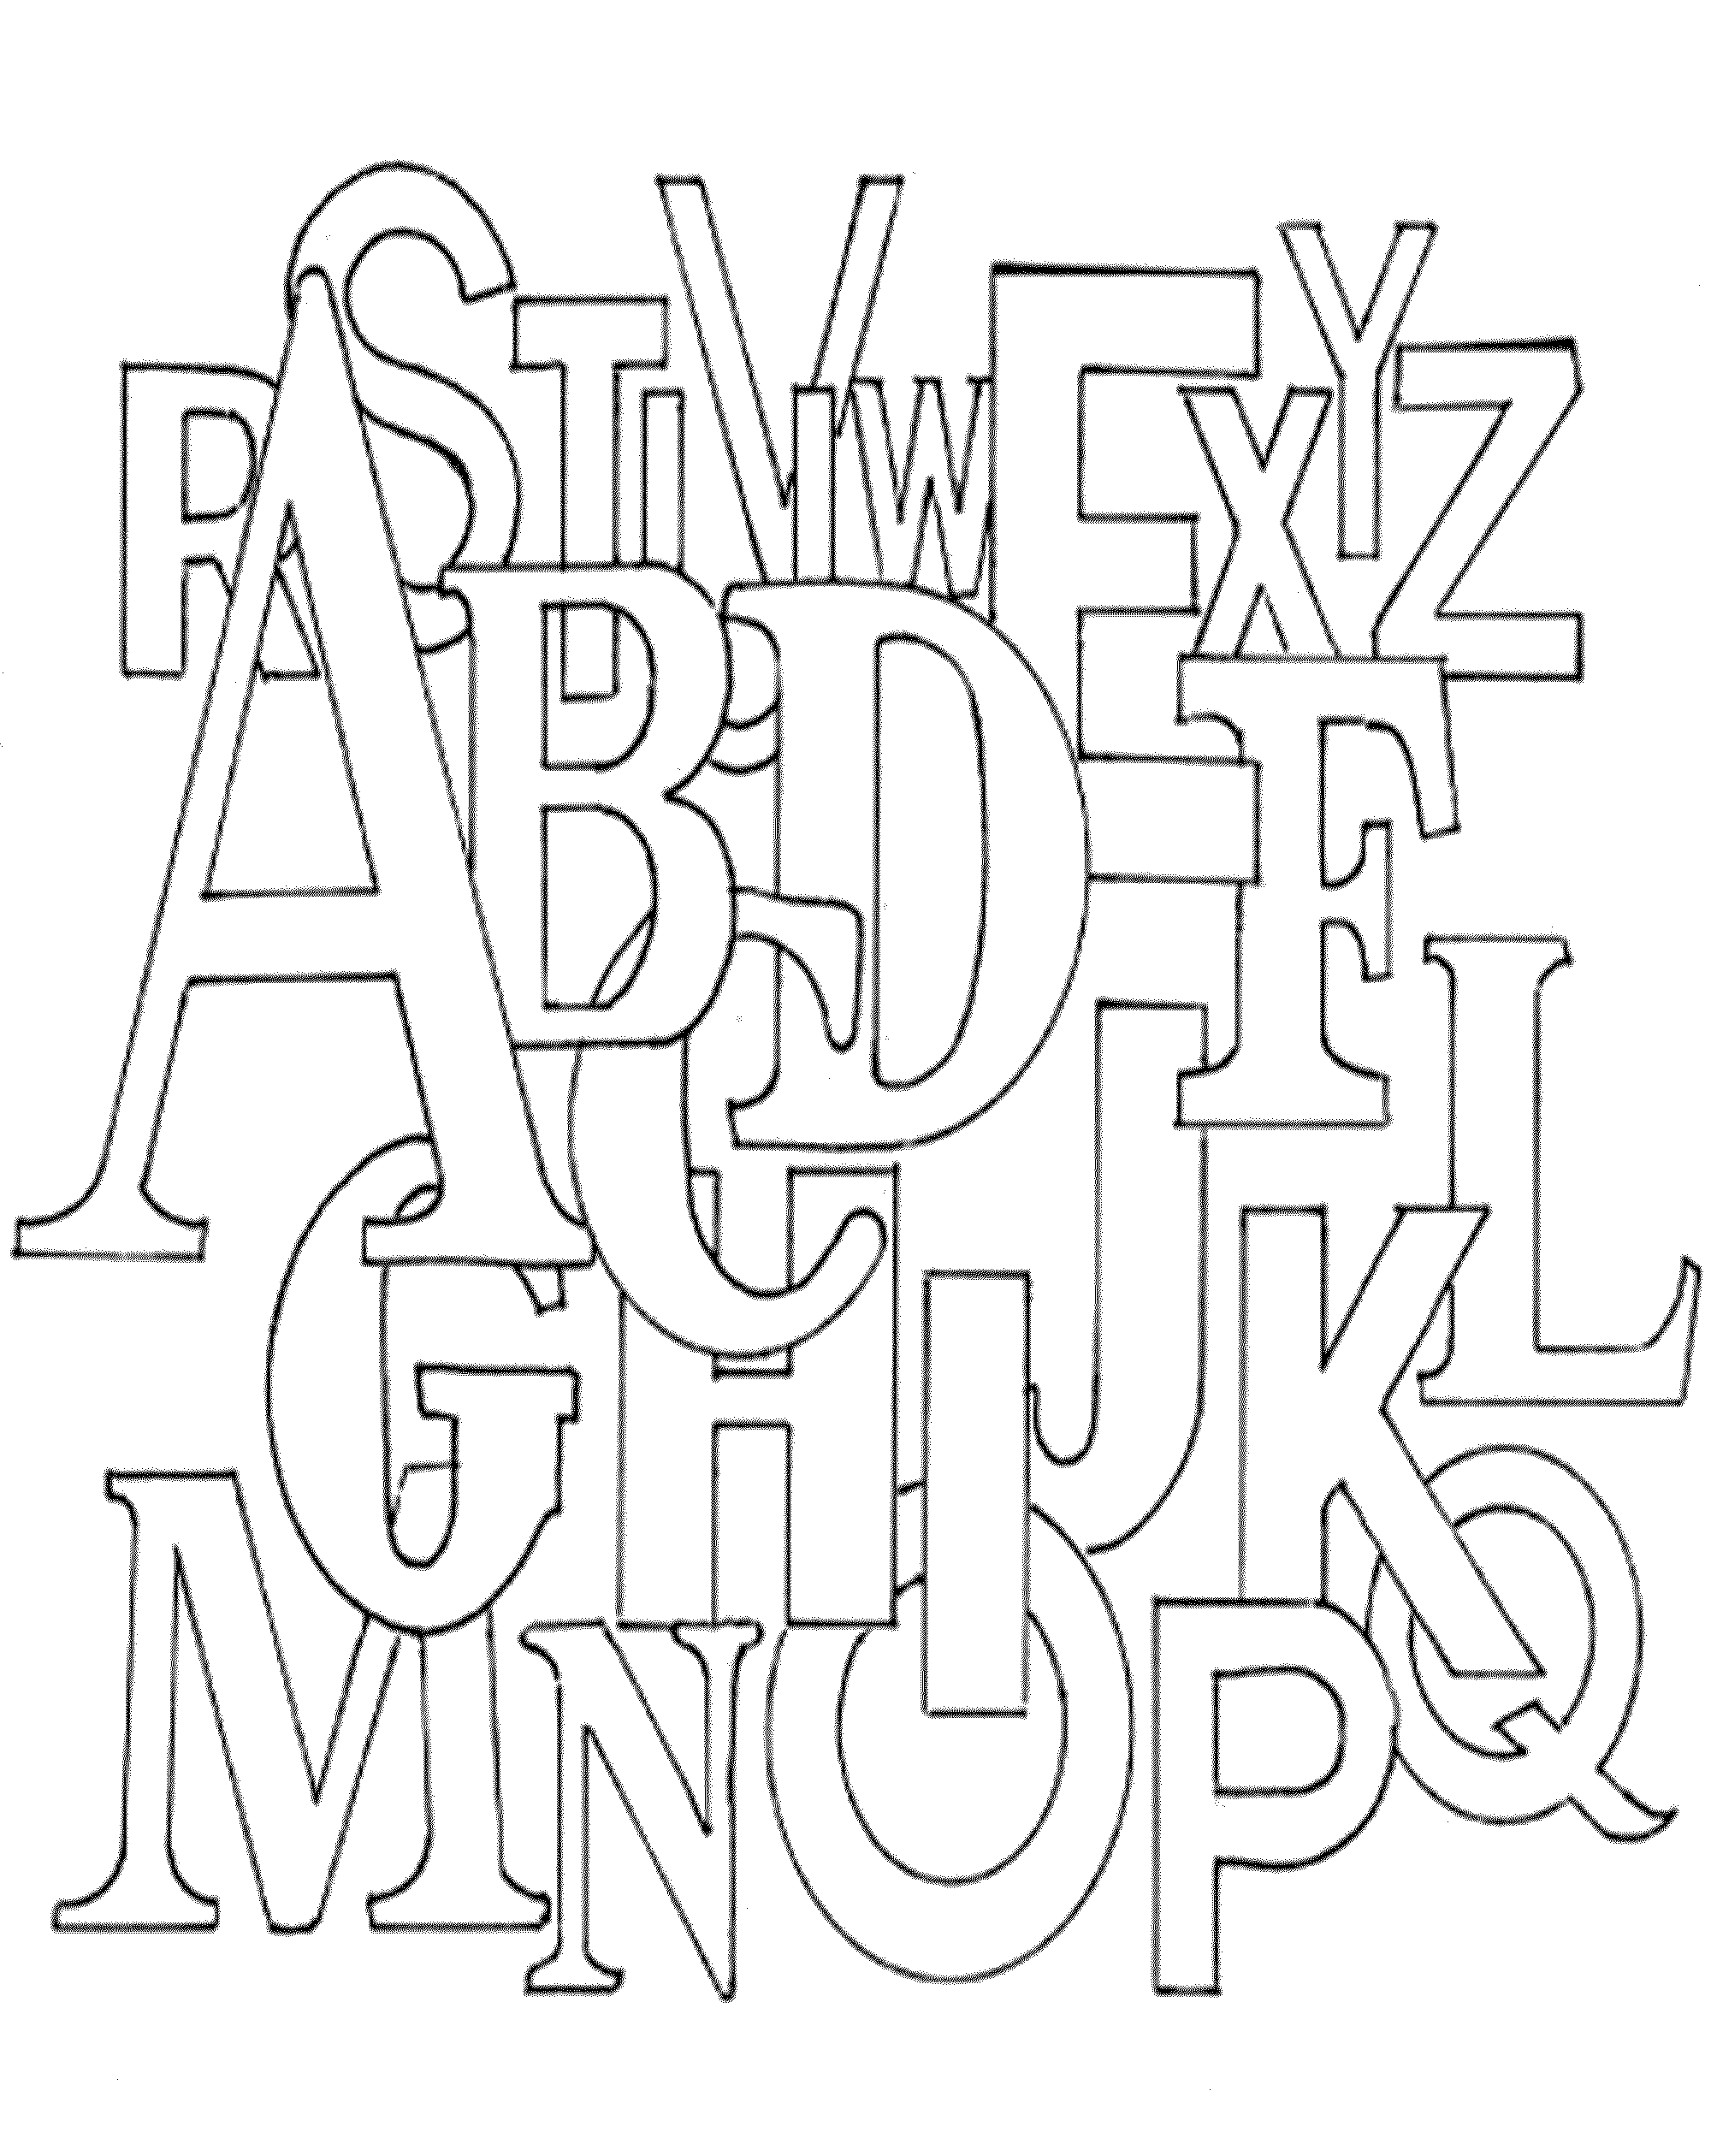 abc coloring page alphabet coloring pages free coloring home coloring abc page